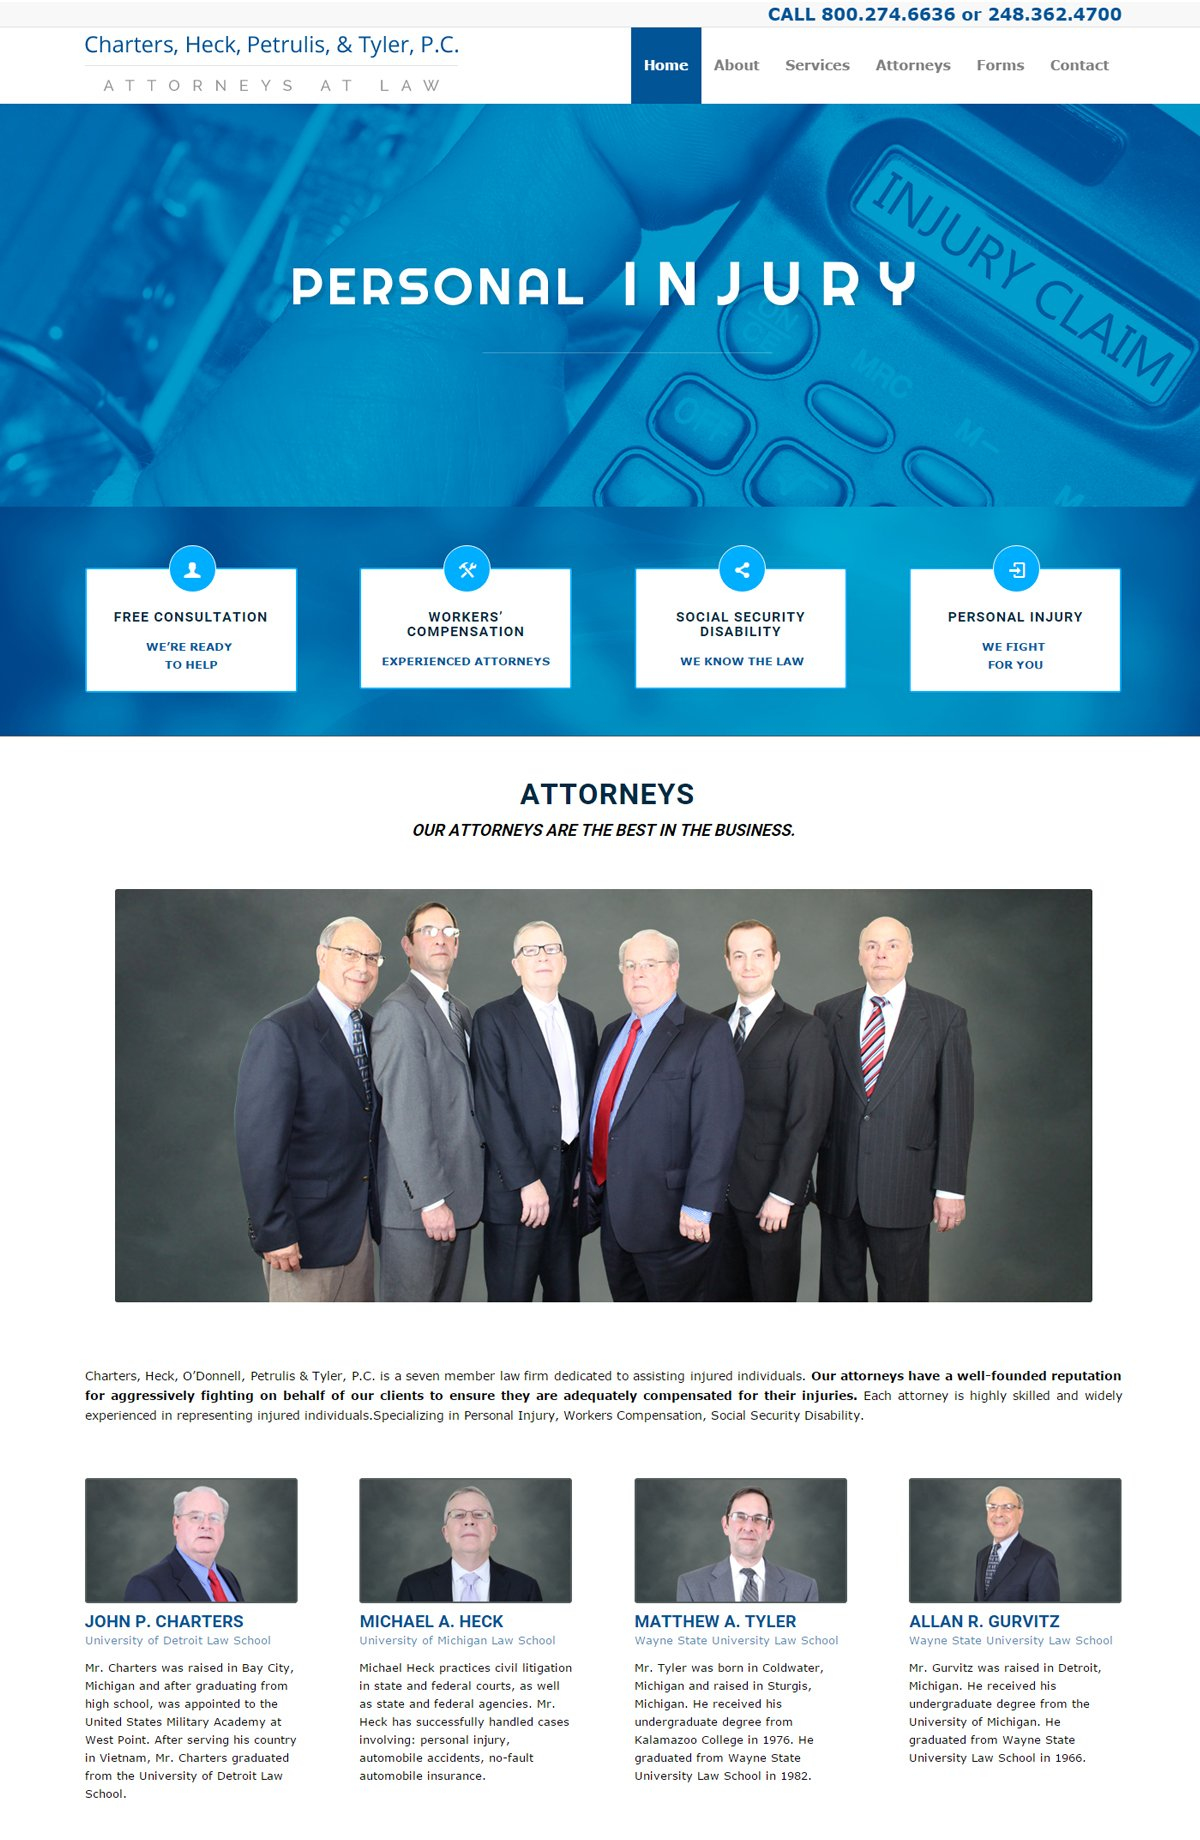 Charters Law Firm